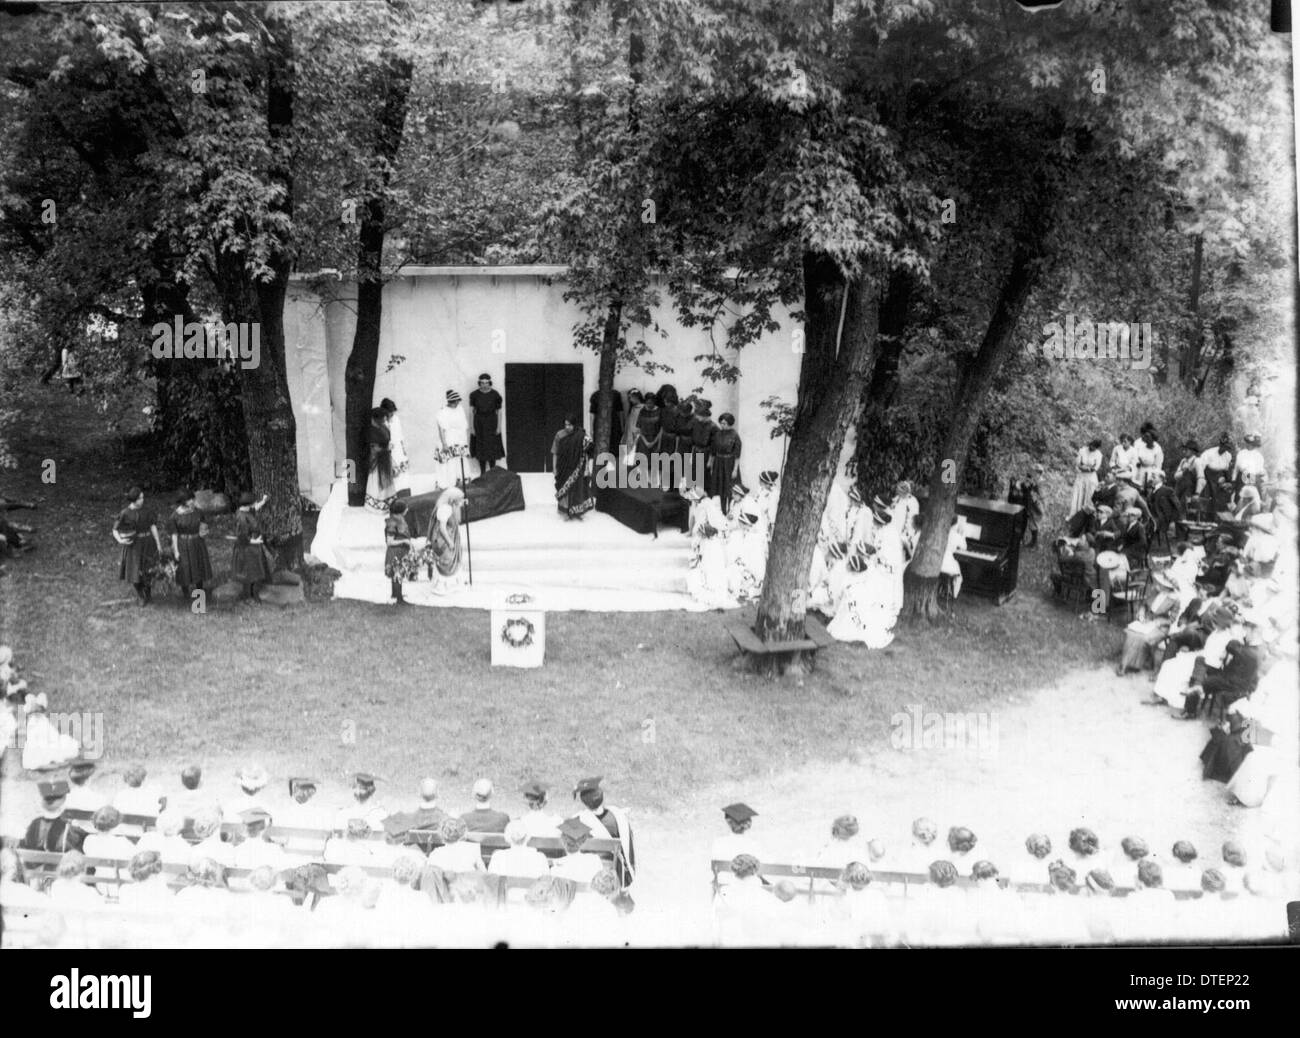 Western College on Tree Day 1913 - Stock Image